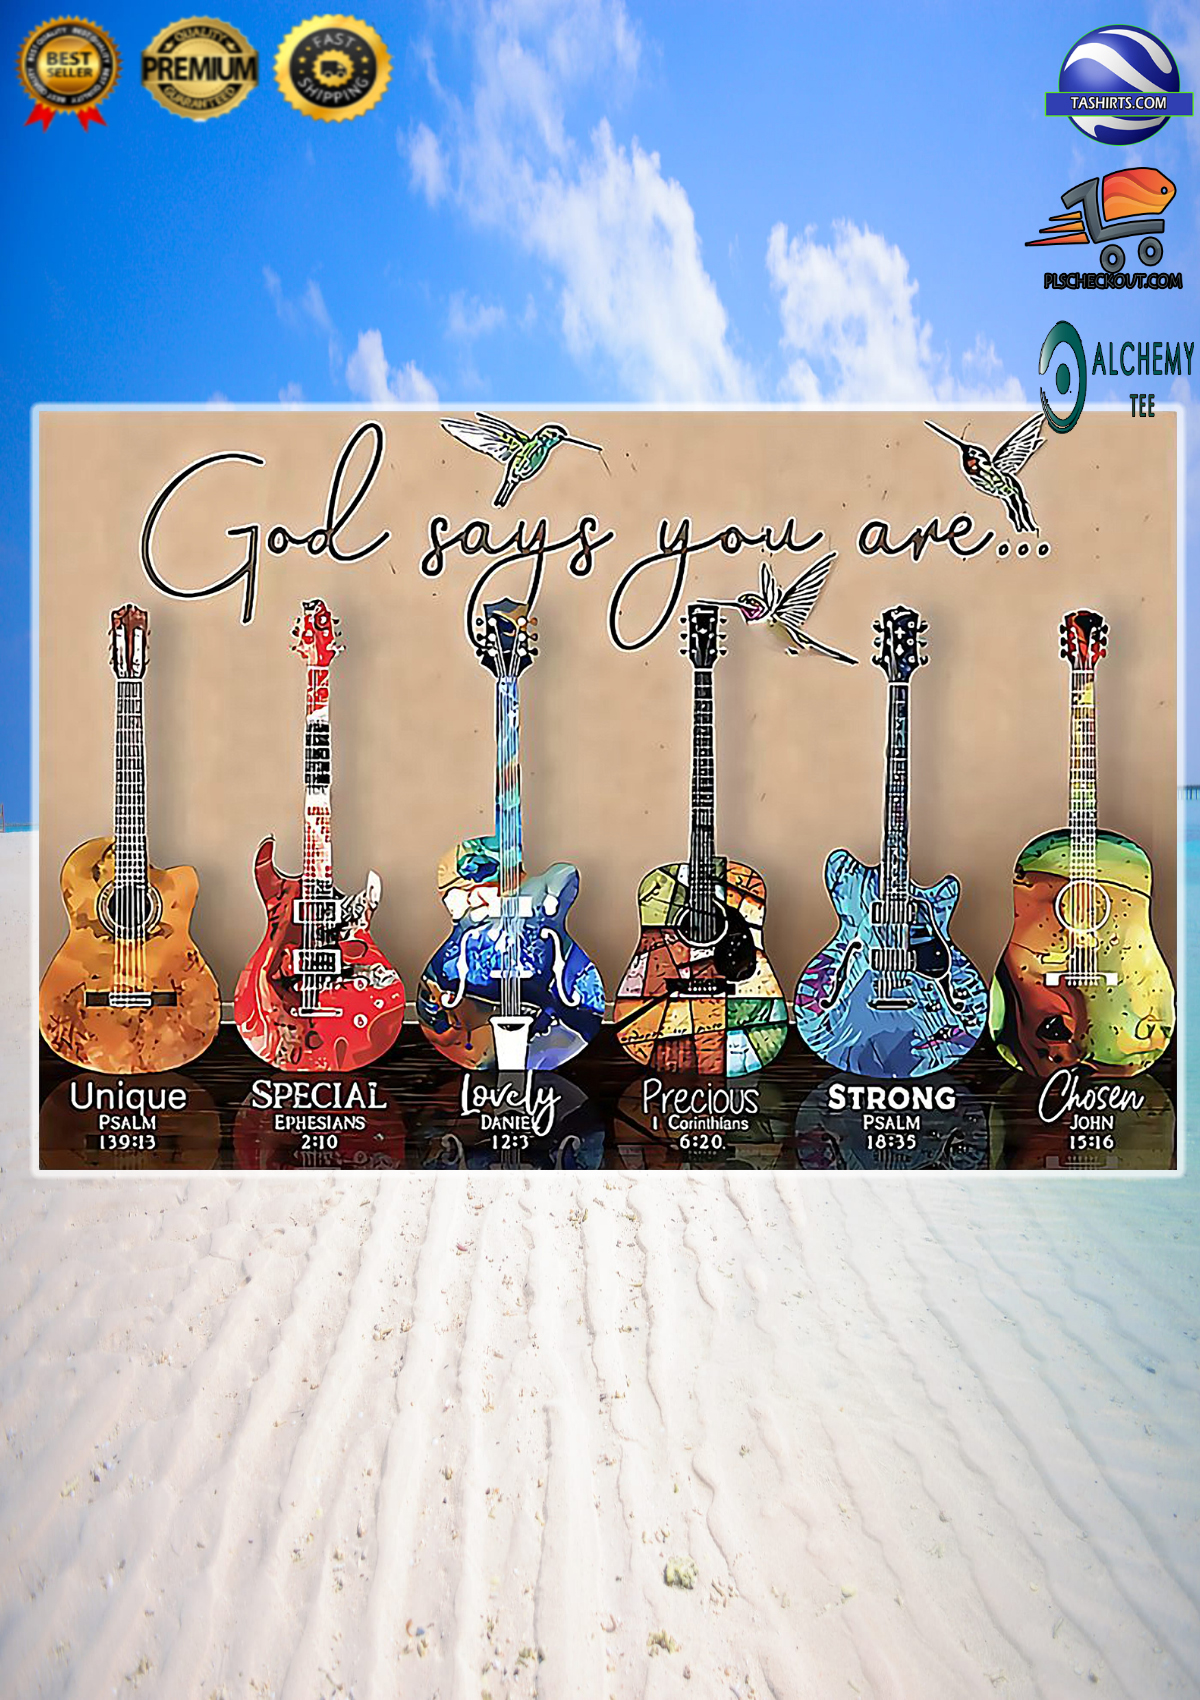 Guitar God Says You Are Unique Special Poster